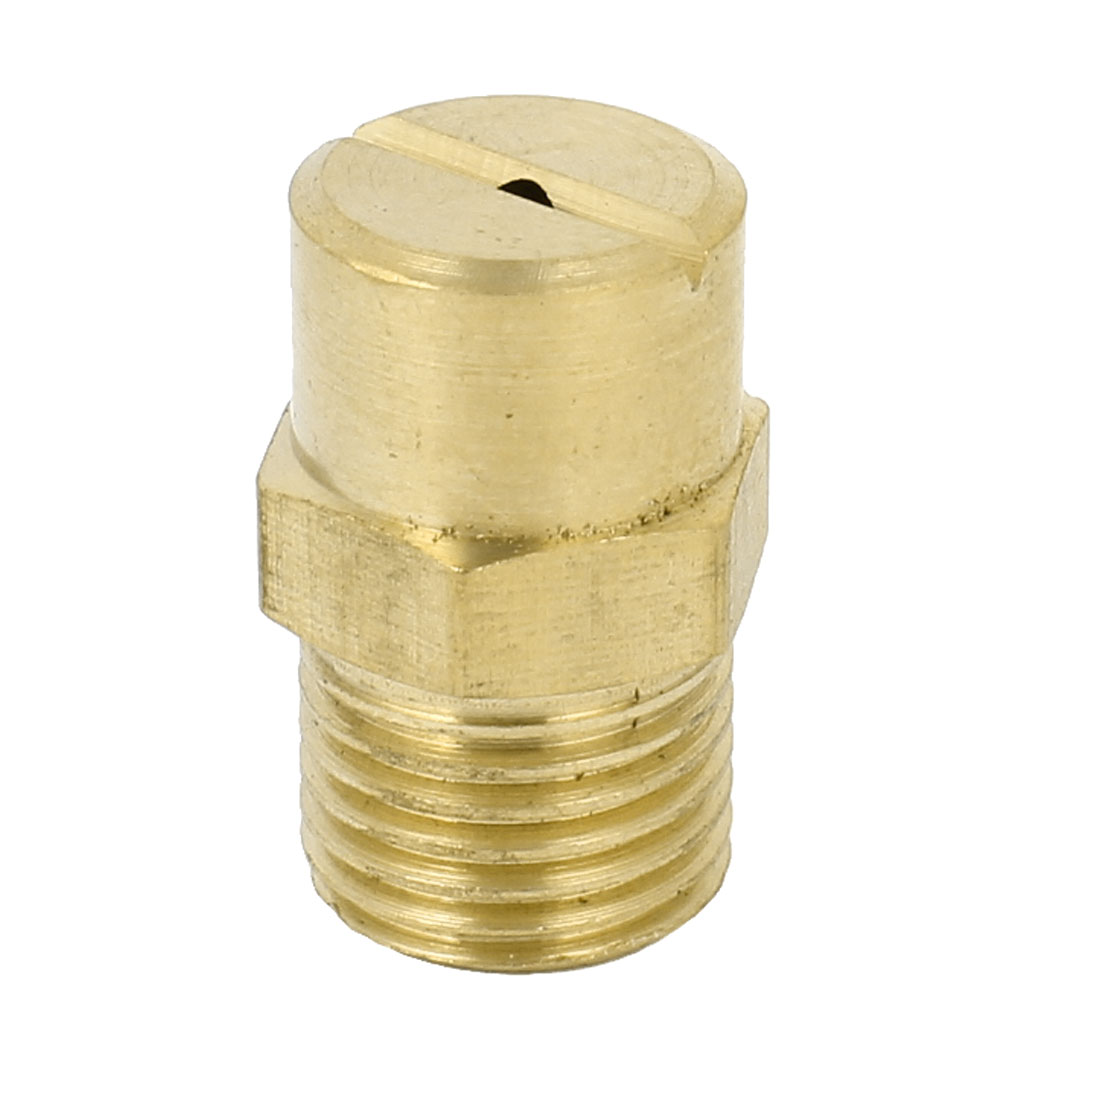 Cooling Dust Cleaning 13mm Male Thread Water Mist Spray Head Nozzle Brass Tone